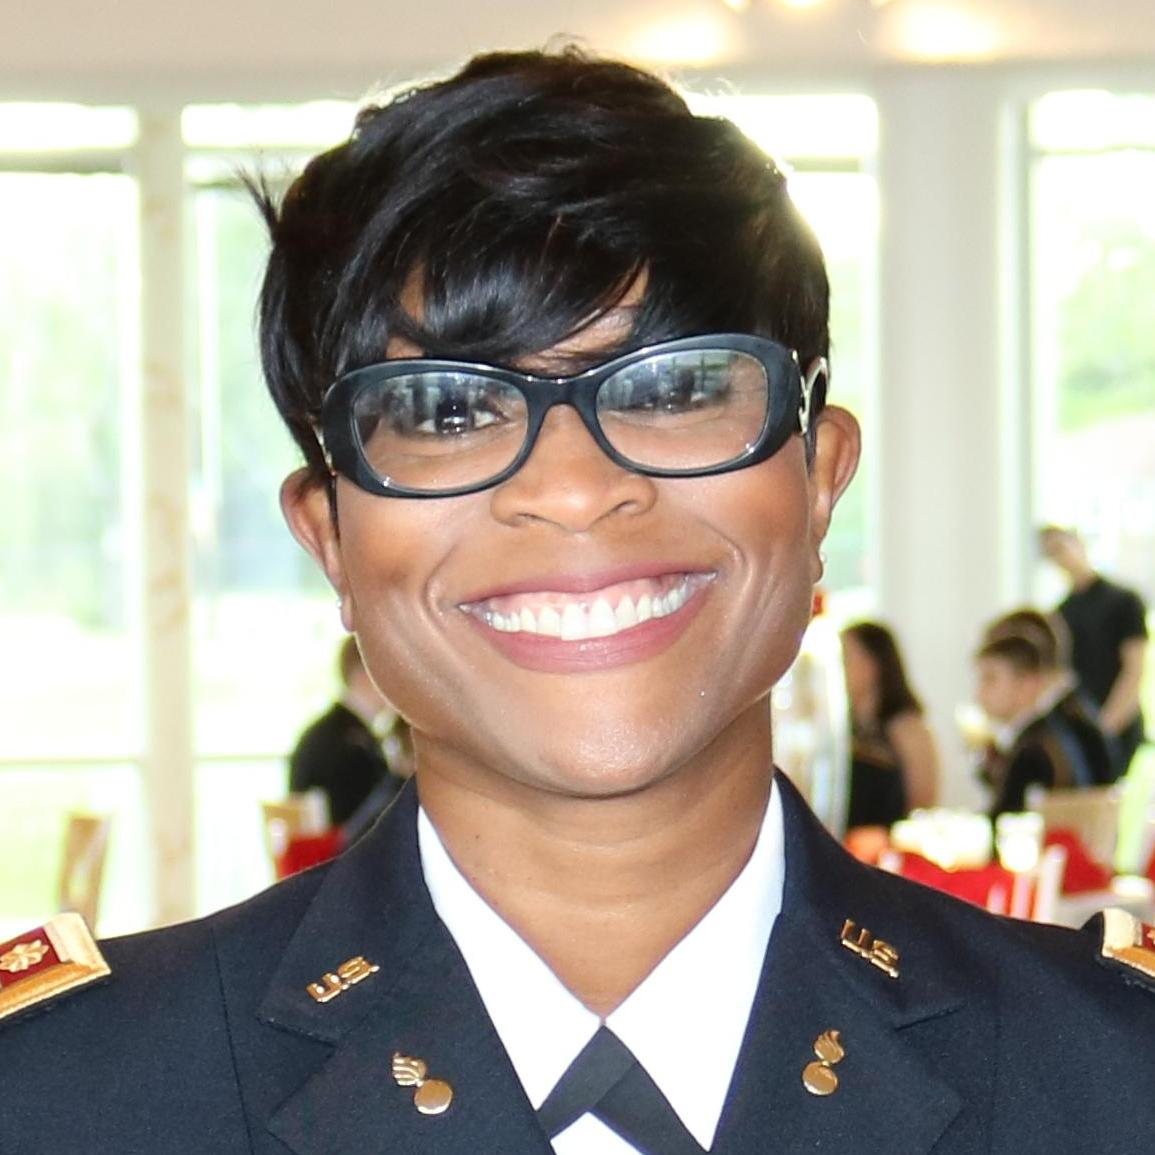 Maj. Crystal Armstrong's Profile Photo